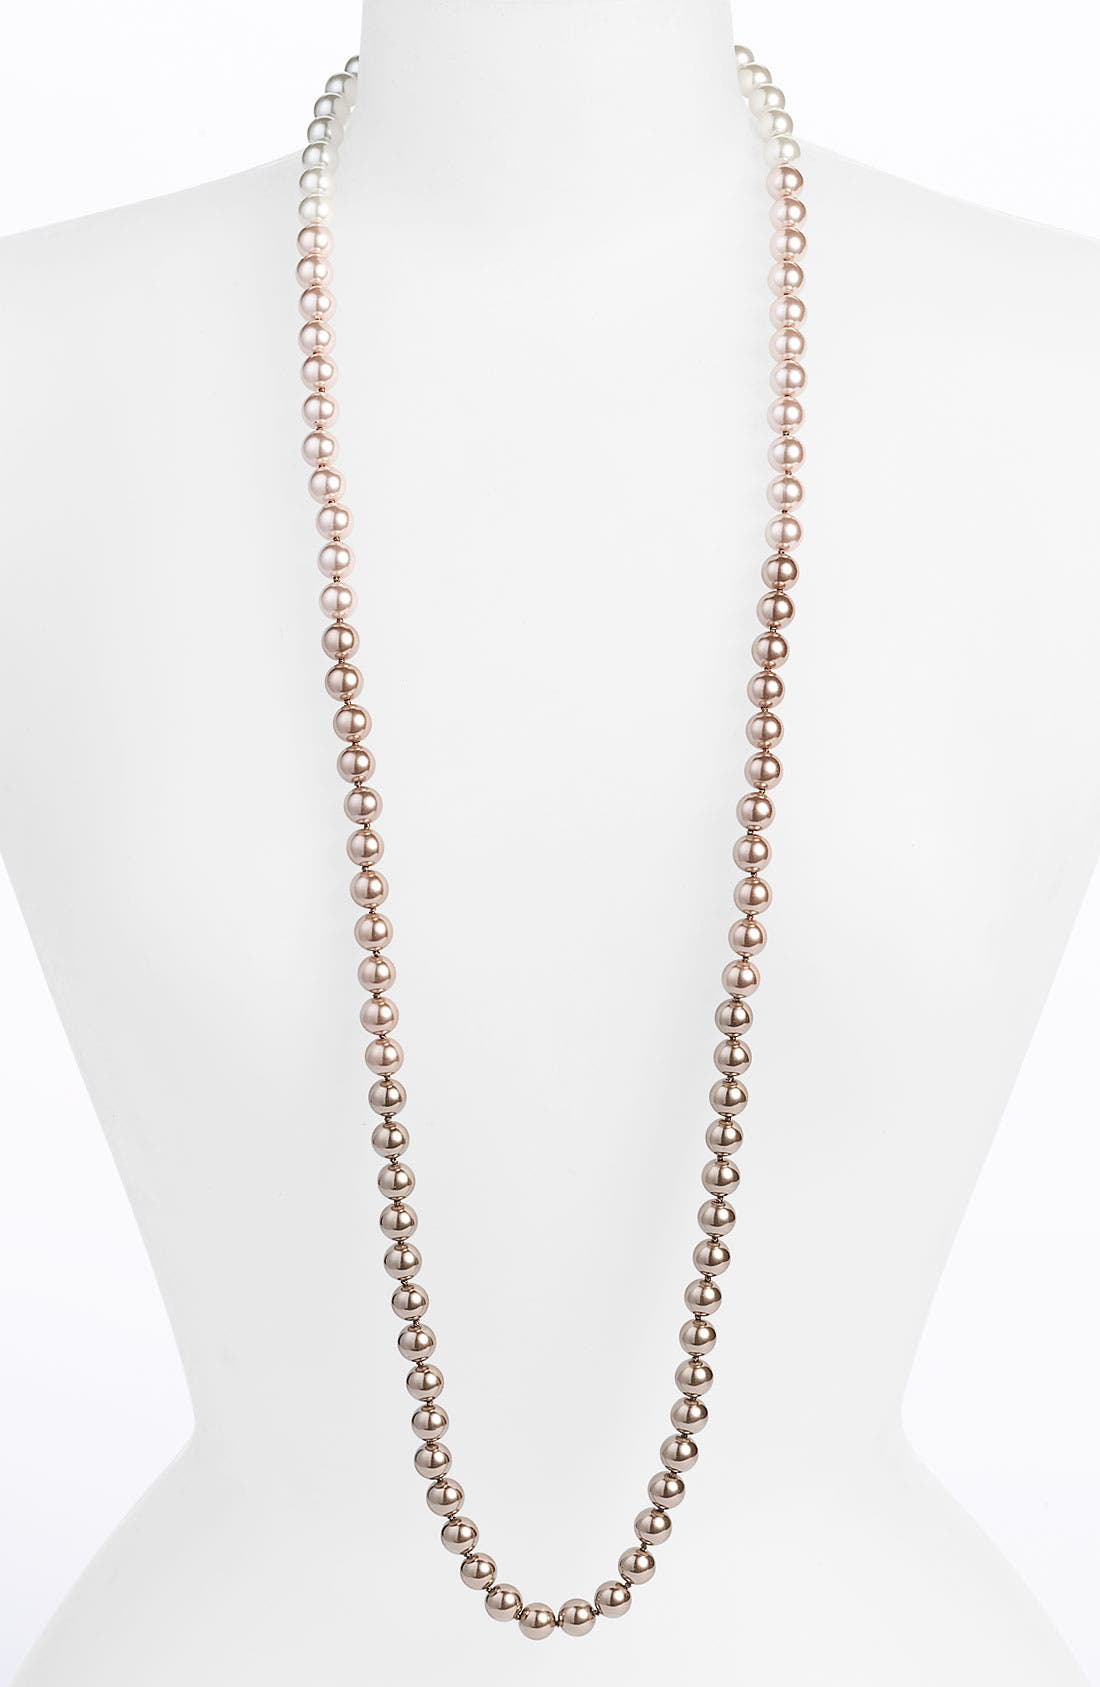 Main Image - Givenchy Ombré Pearl Continuous Long Necklace